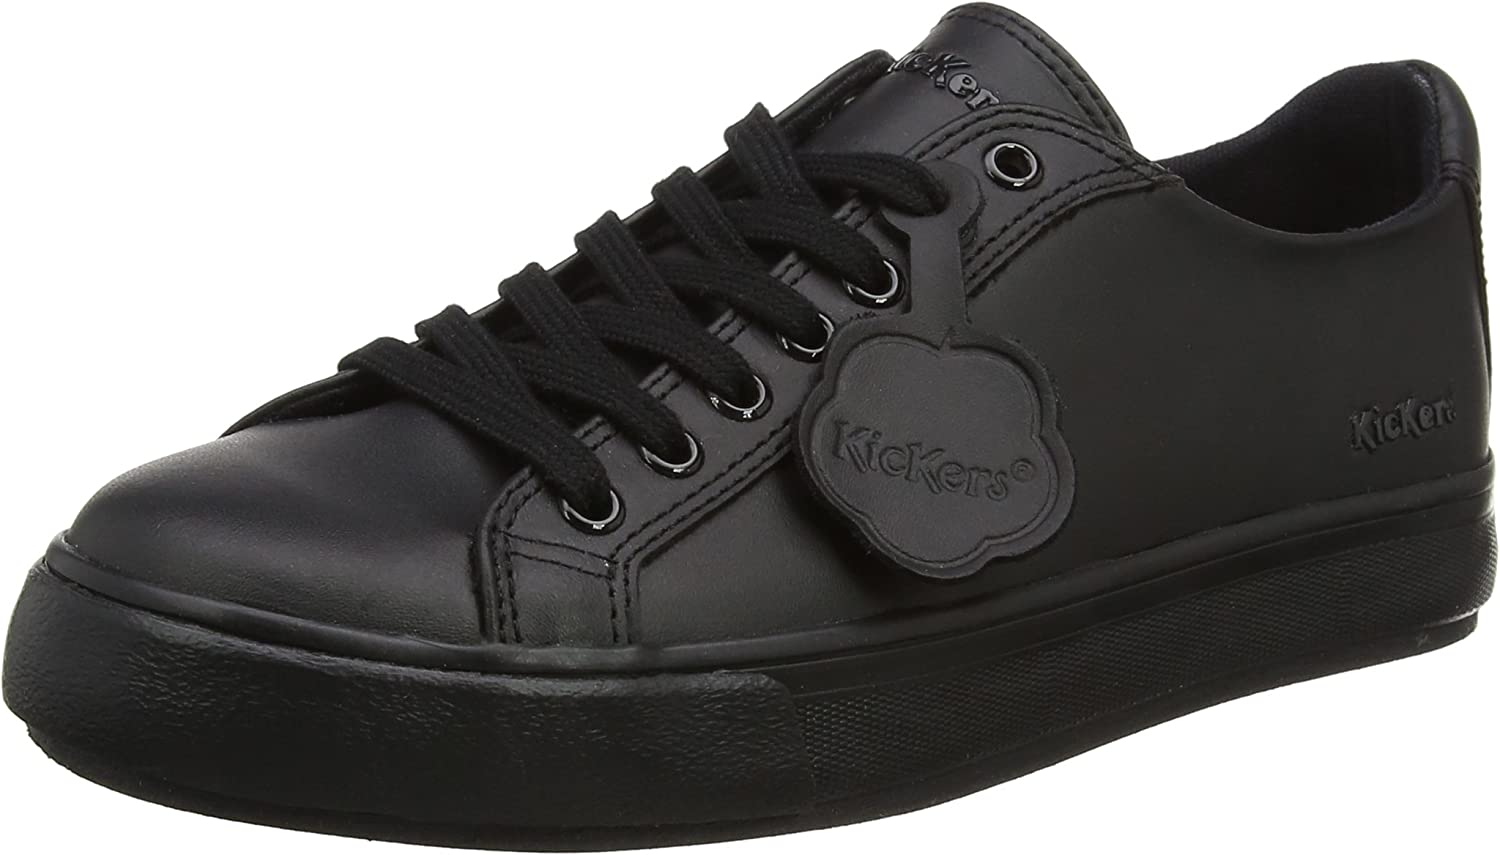 Kickers Unisex Adults' Tovni Lacer Lthr Ua Trainers